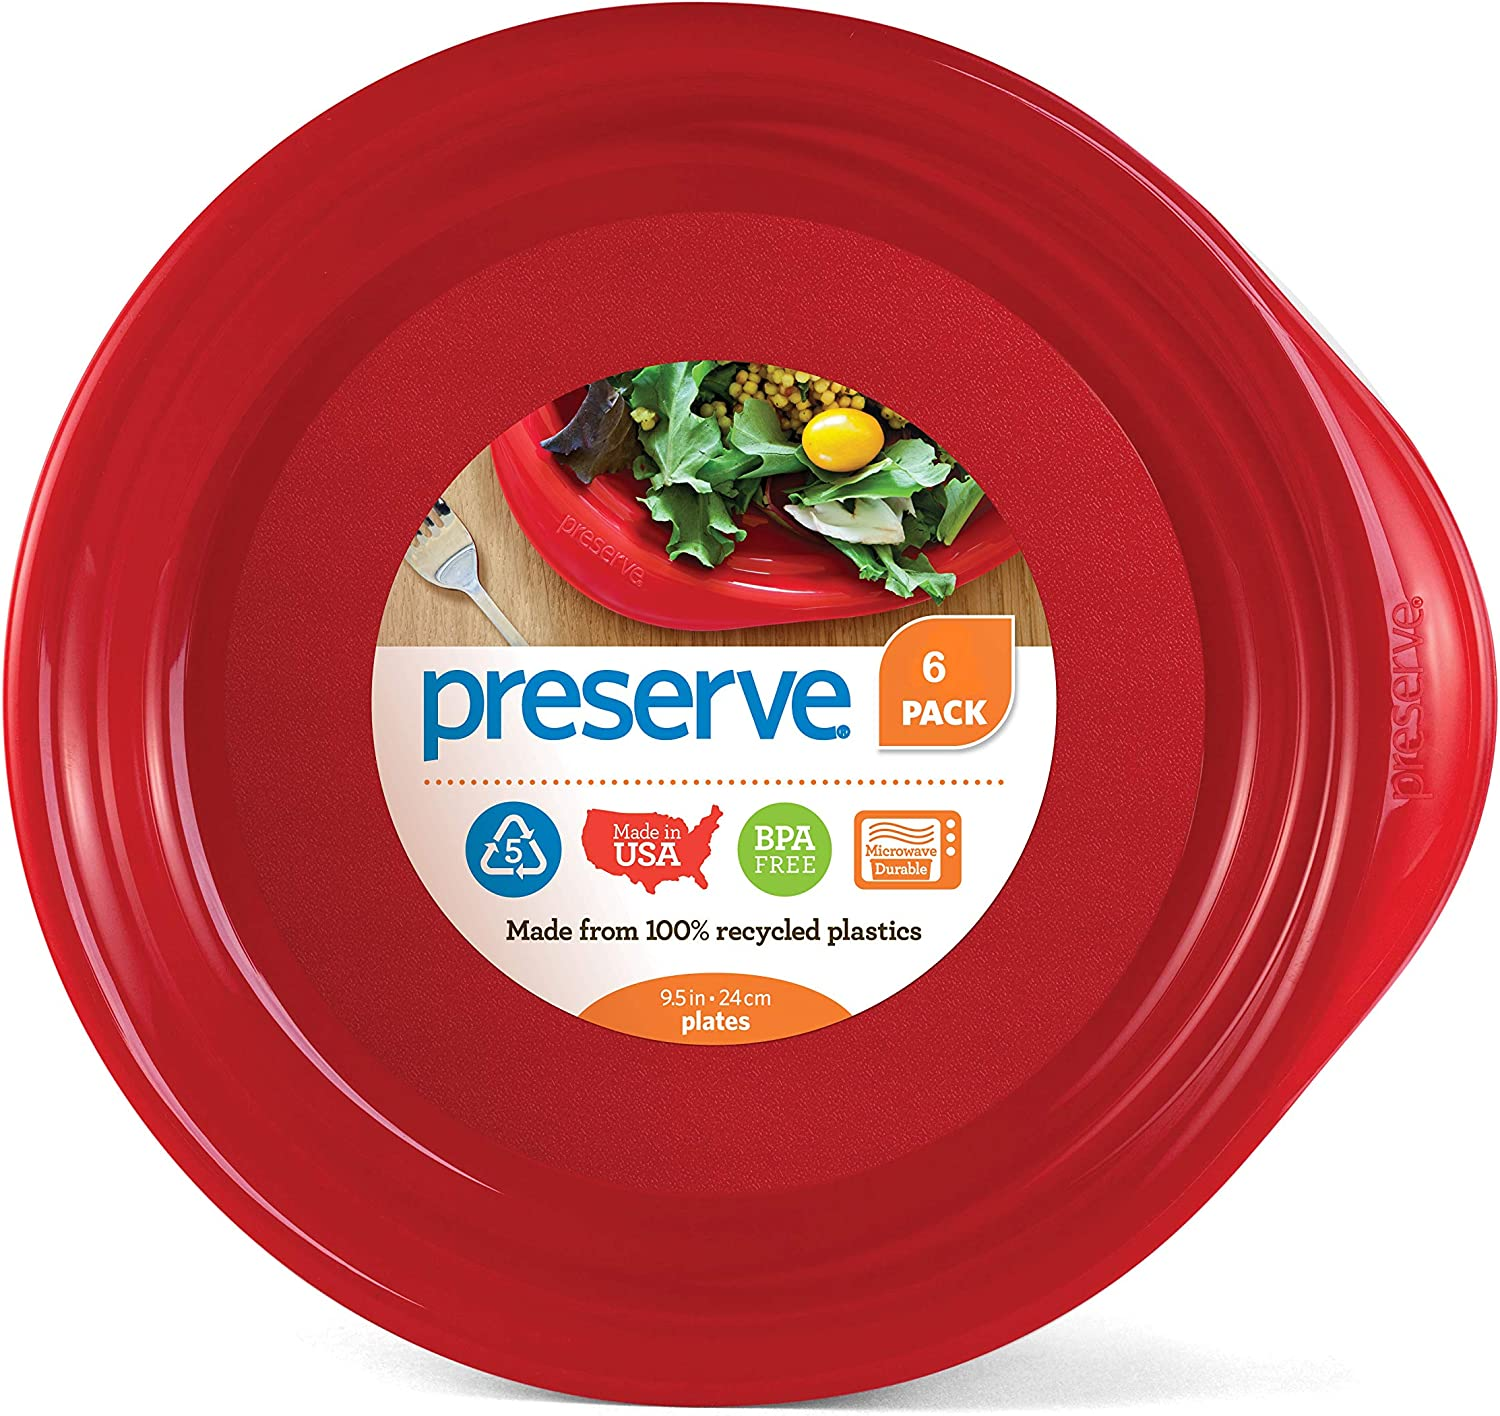 Preserve Everyday BPA Free Dinner Plates Made from Recycled Plastic, Set of 6, Pepper Red